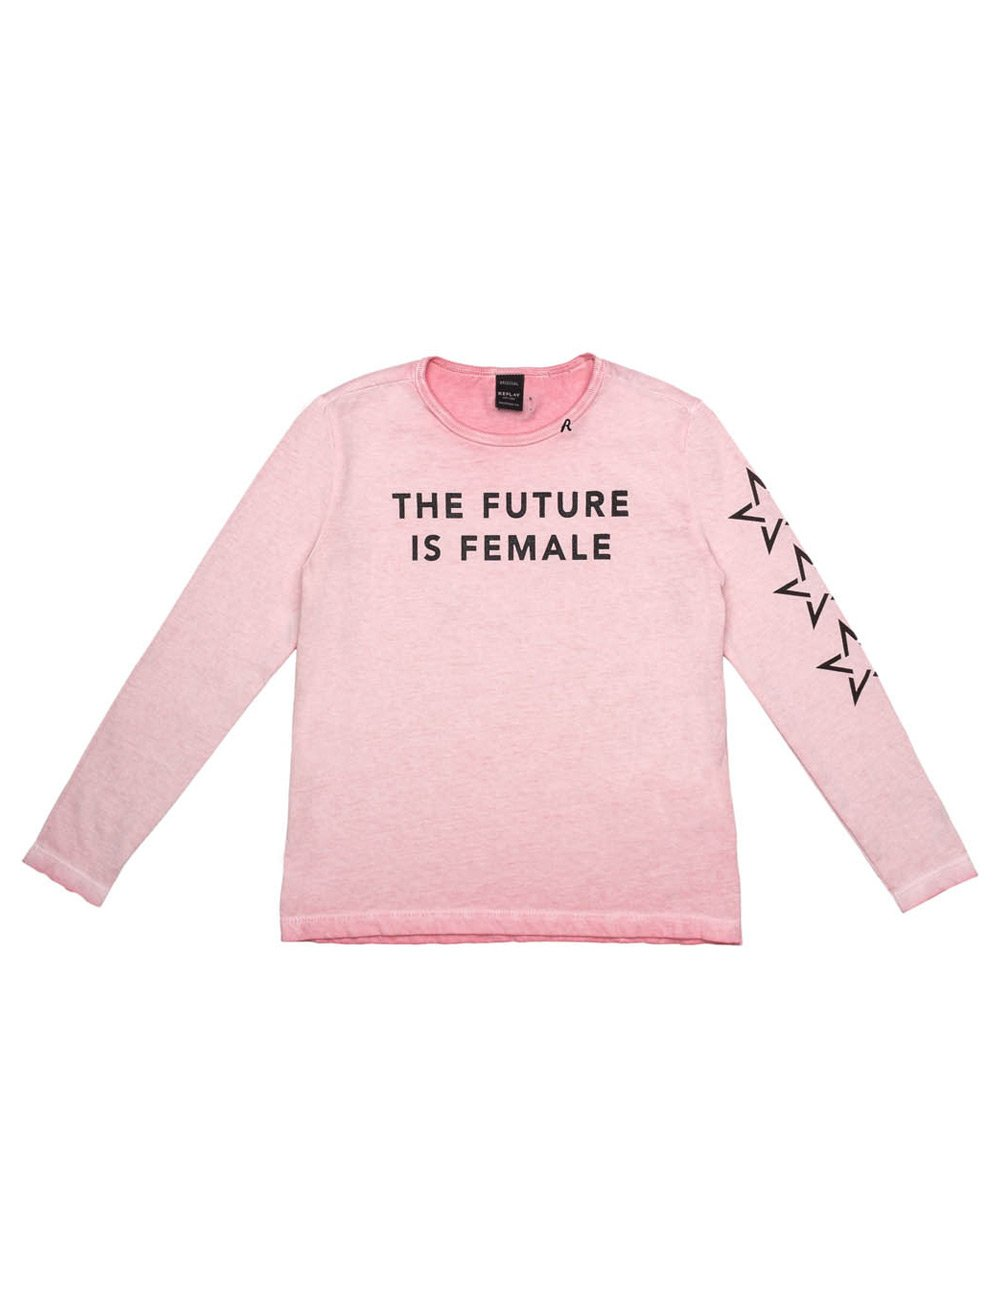 Replay Girls Longsleeved Pink T-Shirt With Print in Size 14 Years Pink